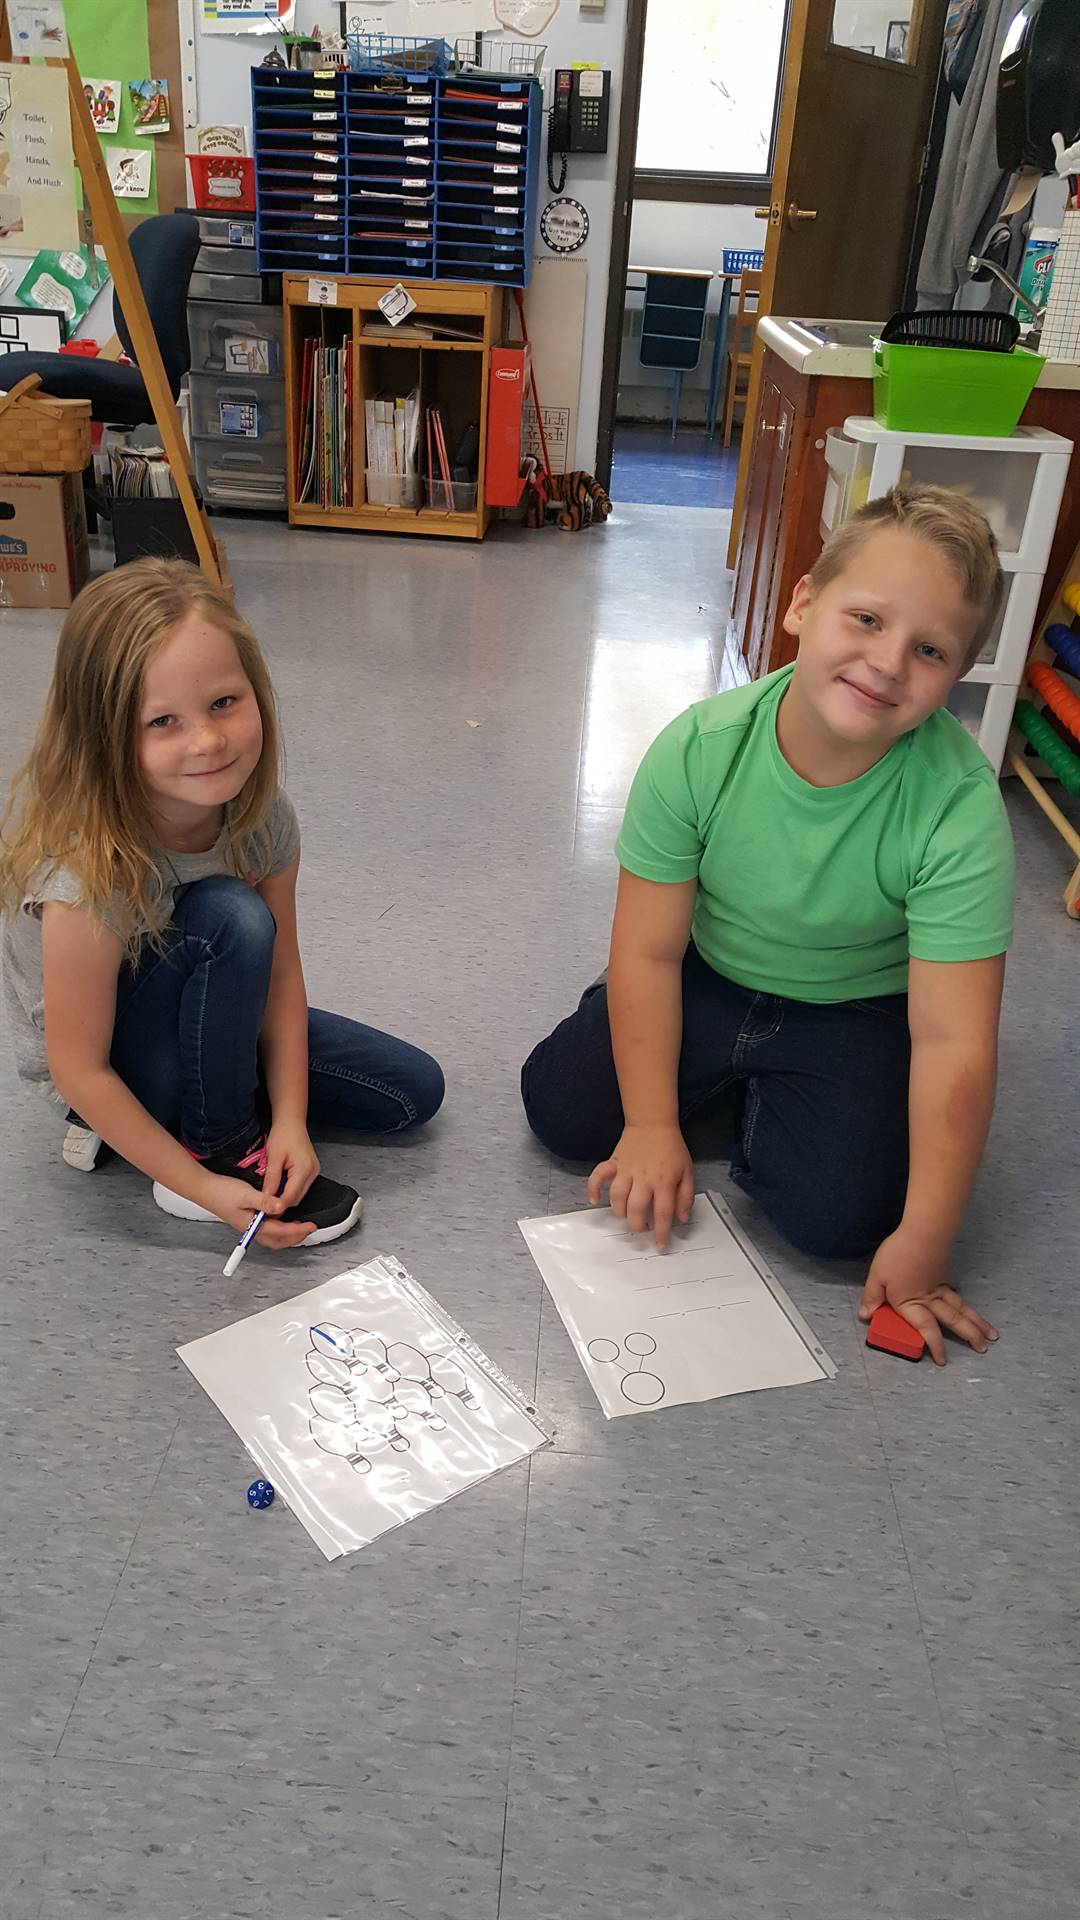 2 first graders play a game.